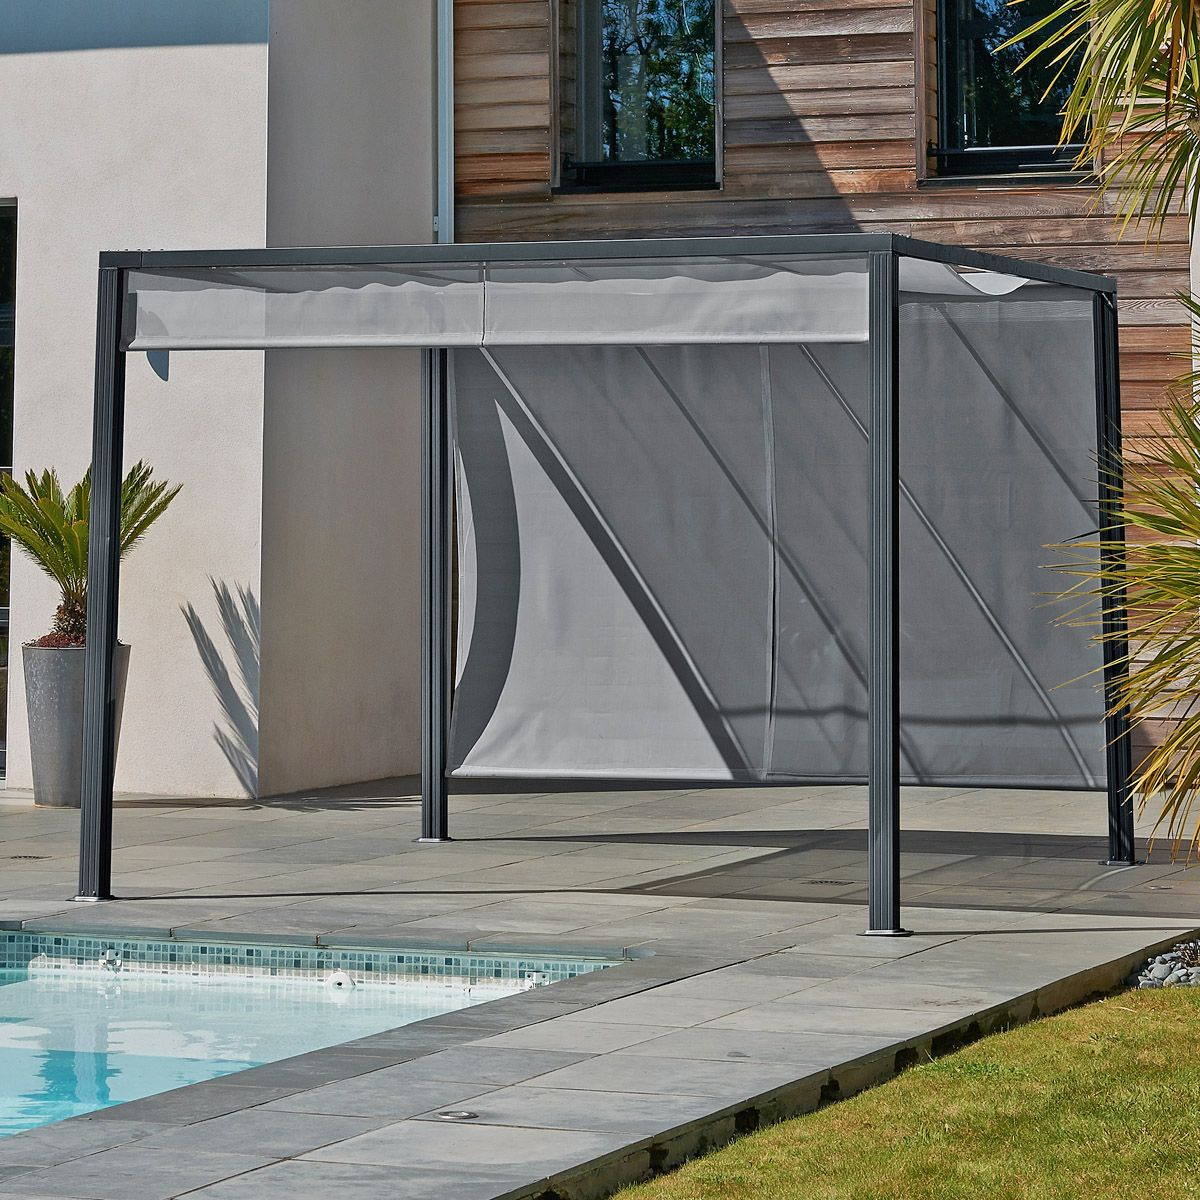 pergola design en aluminium avec brise soleil jardin. Black Bedroom Furniture Sets. Home Design Ideas